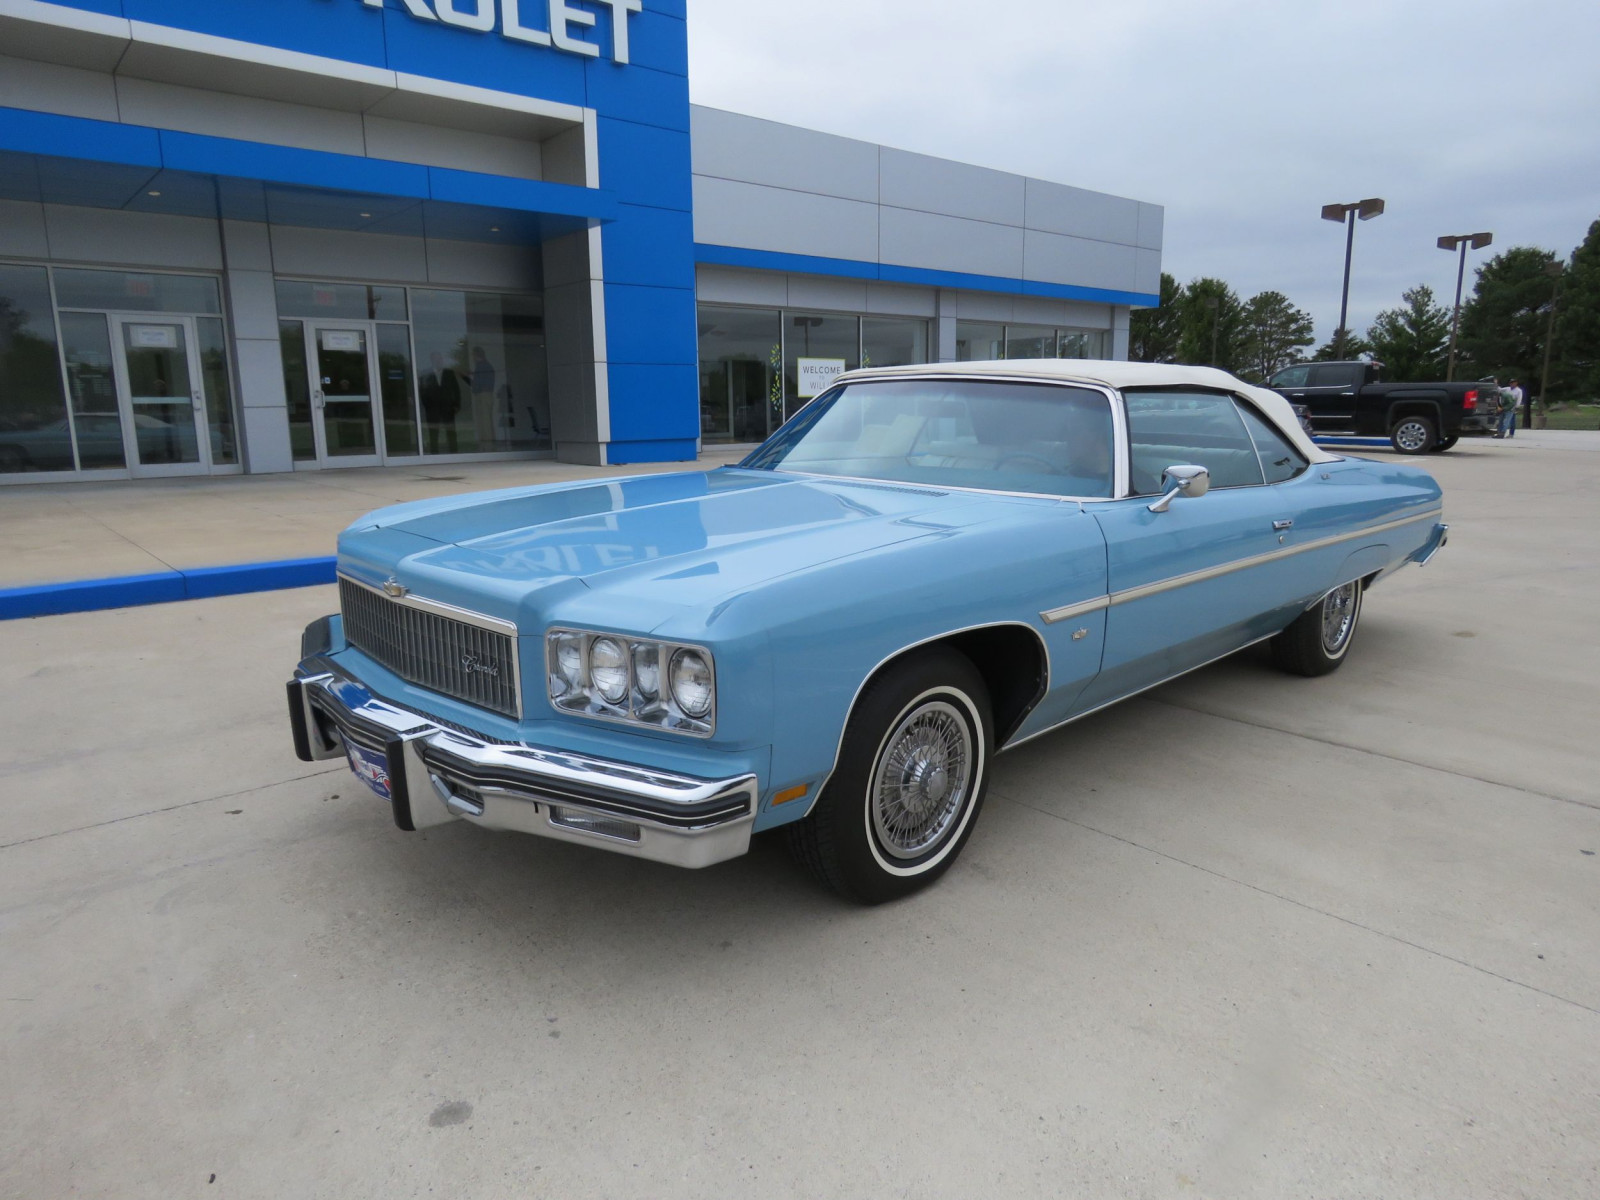 1975 Chevrolet Caprice Classic Convertible - Image 2